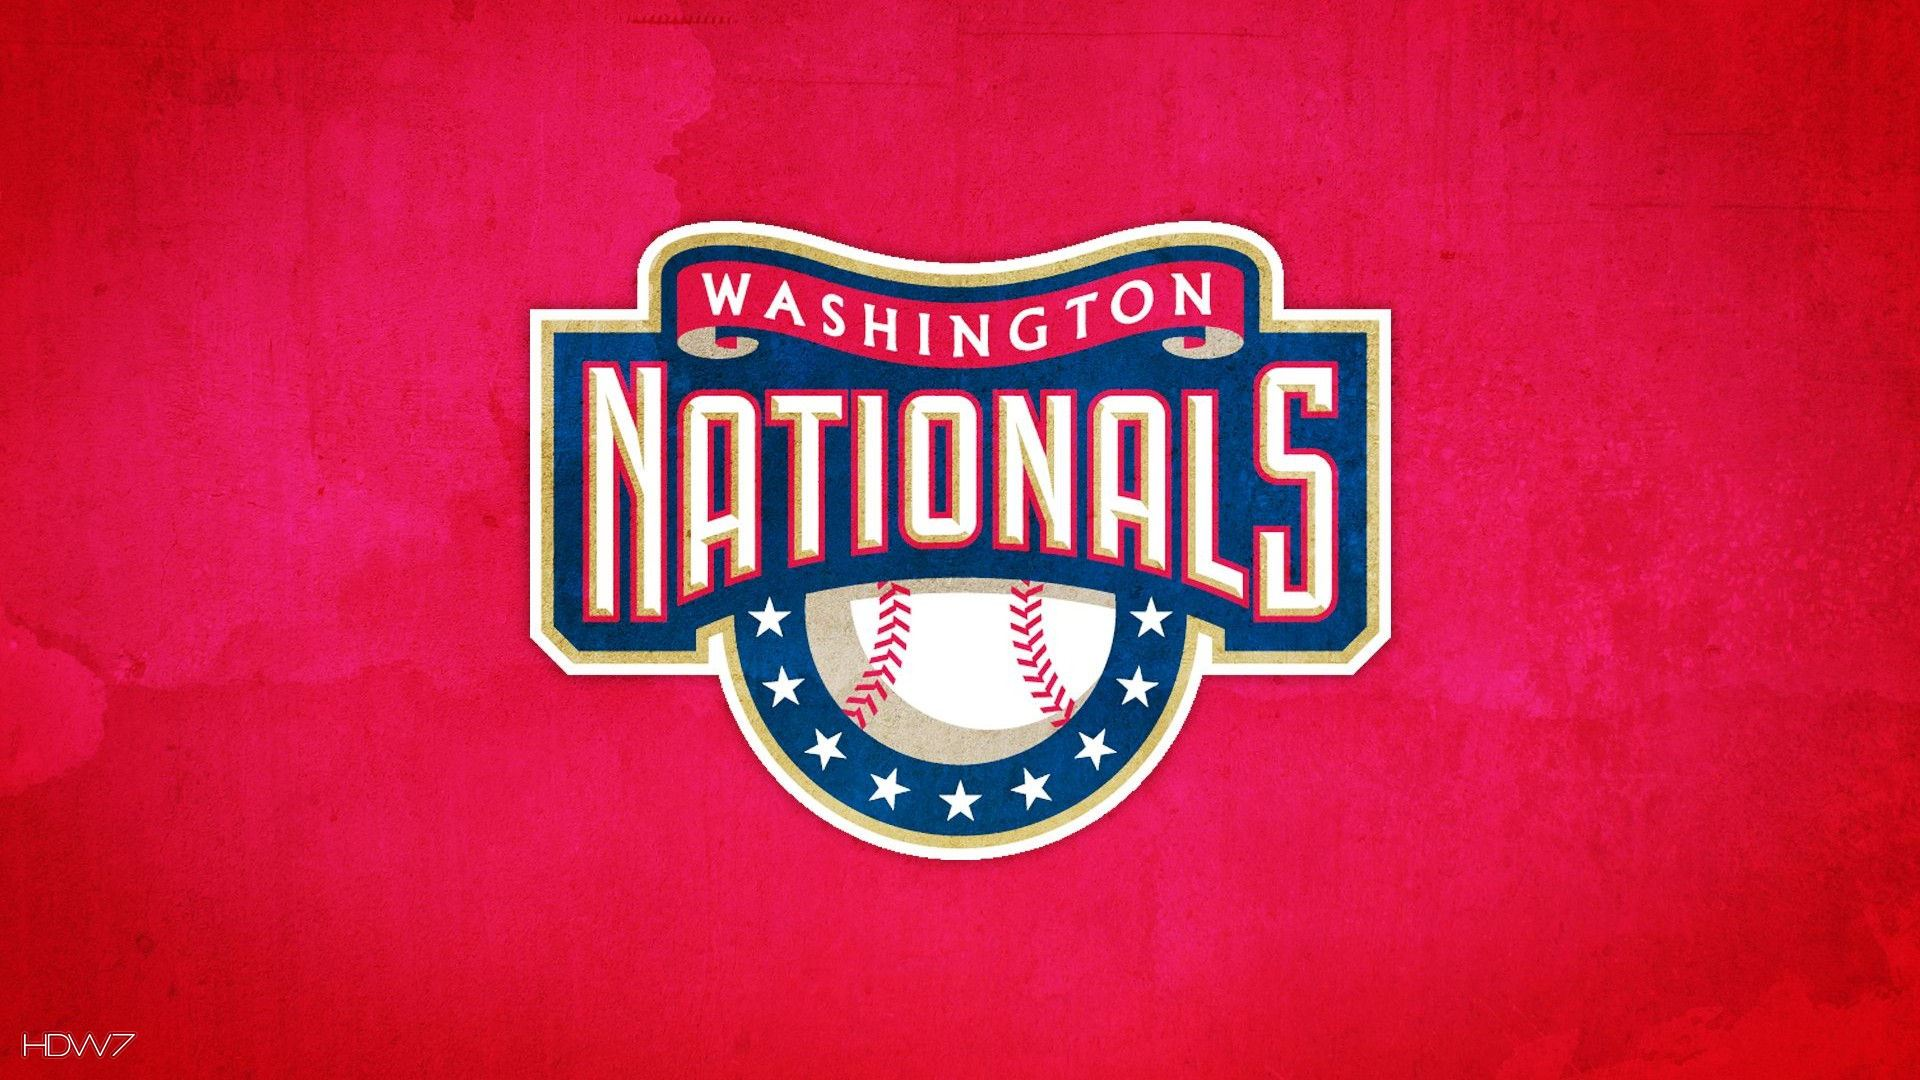 Enjoy Nationals baseball